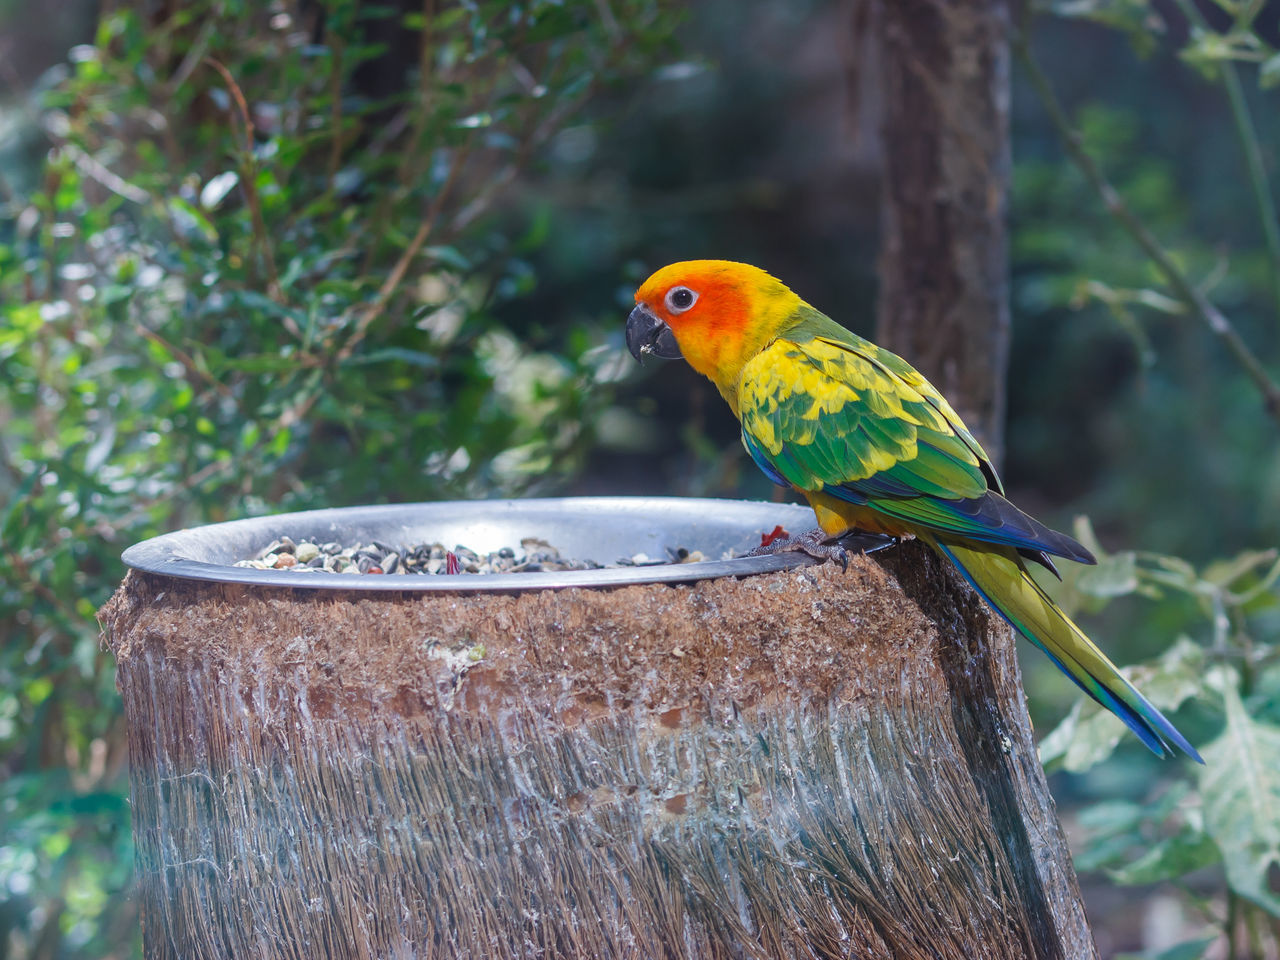 Sun Conure - Aratinga Solistalis - is sits on a feeding trough with food Animal Themes Animals In The Wild Aratinga Background Beak Beak Beautiful Beauty In Nature Bird Branch Colorful Conure Exotic Feather  Nature No People One Animal Parrot Pet Sits Solistalis Sun Tree Wildlife Zoology